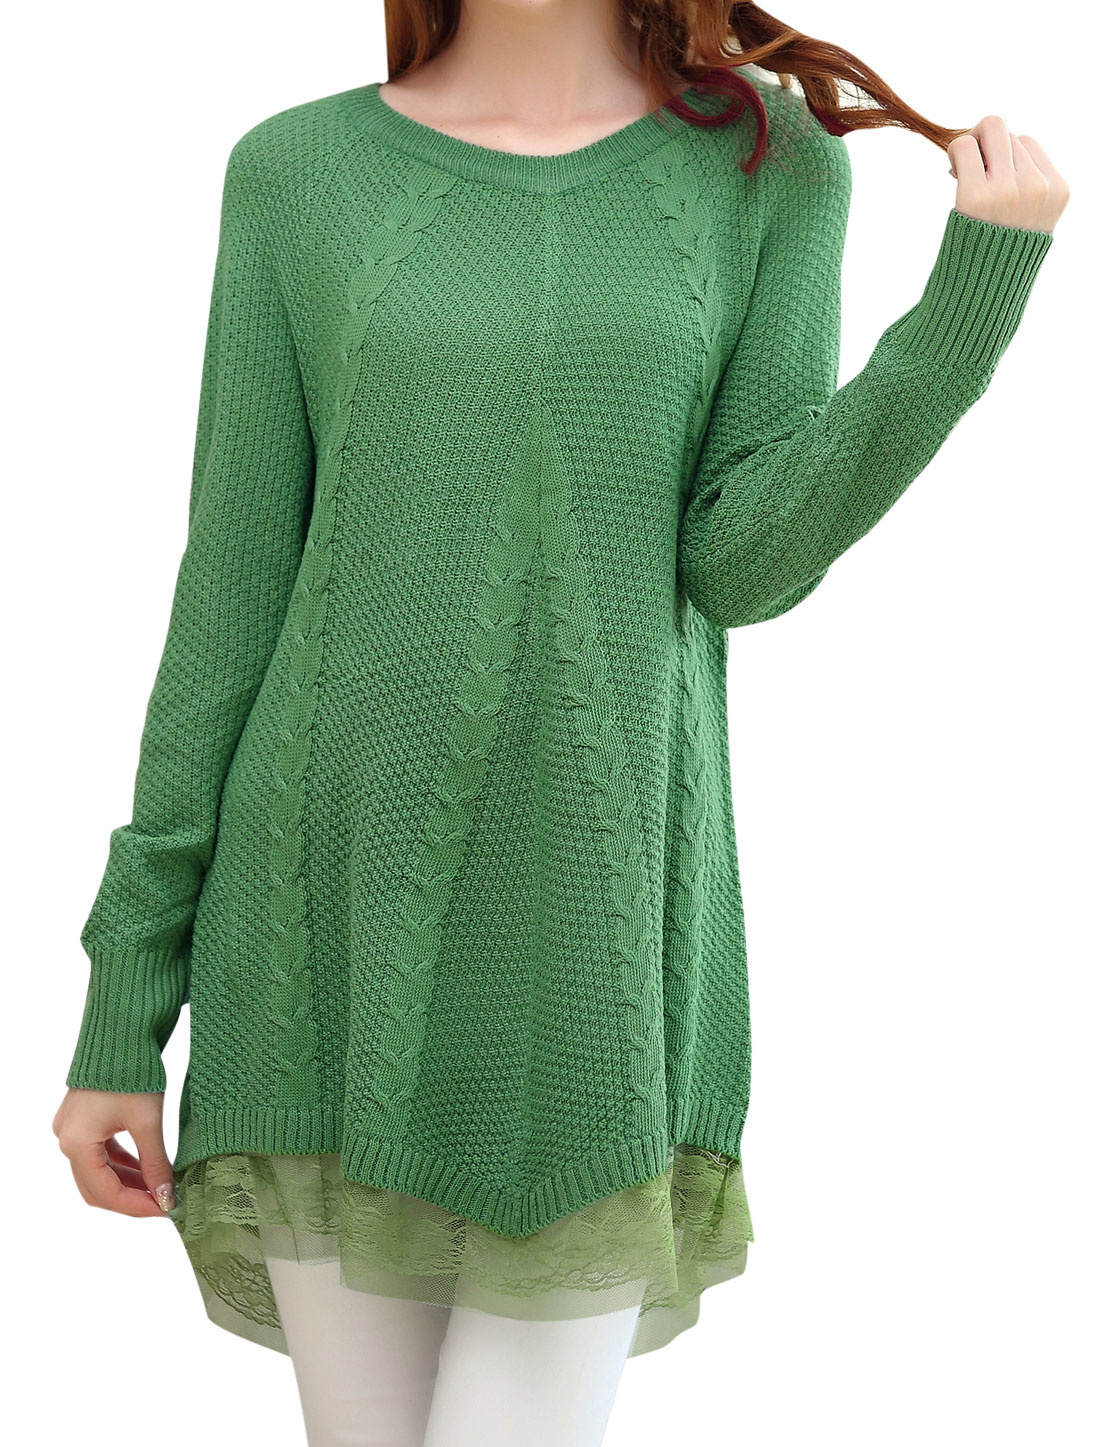 Maternity Round Neck Raglan Sleeve Lace Patchwork Hem Tunic Sweater Light Green M